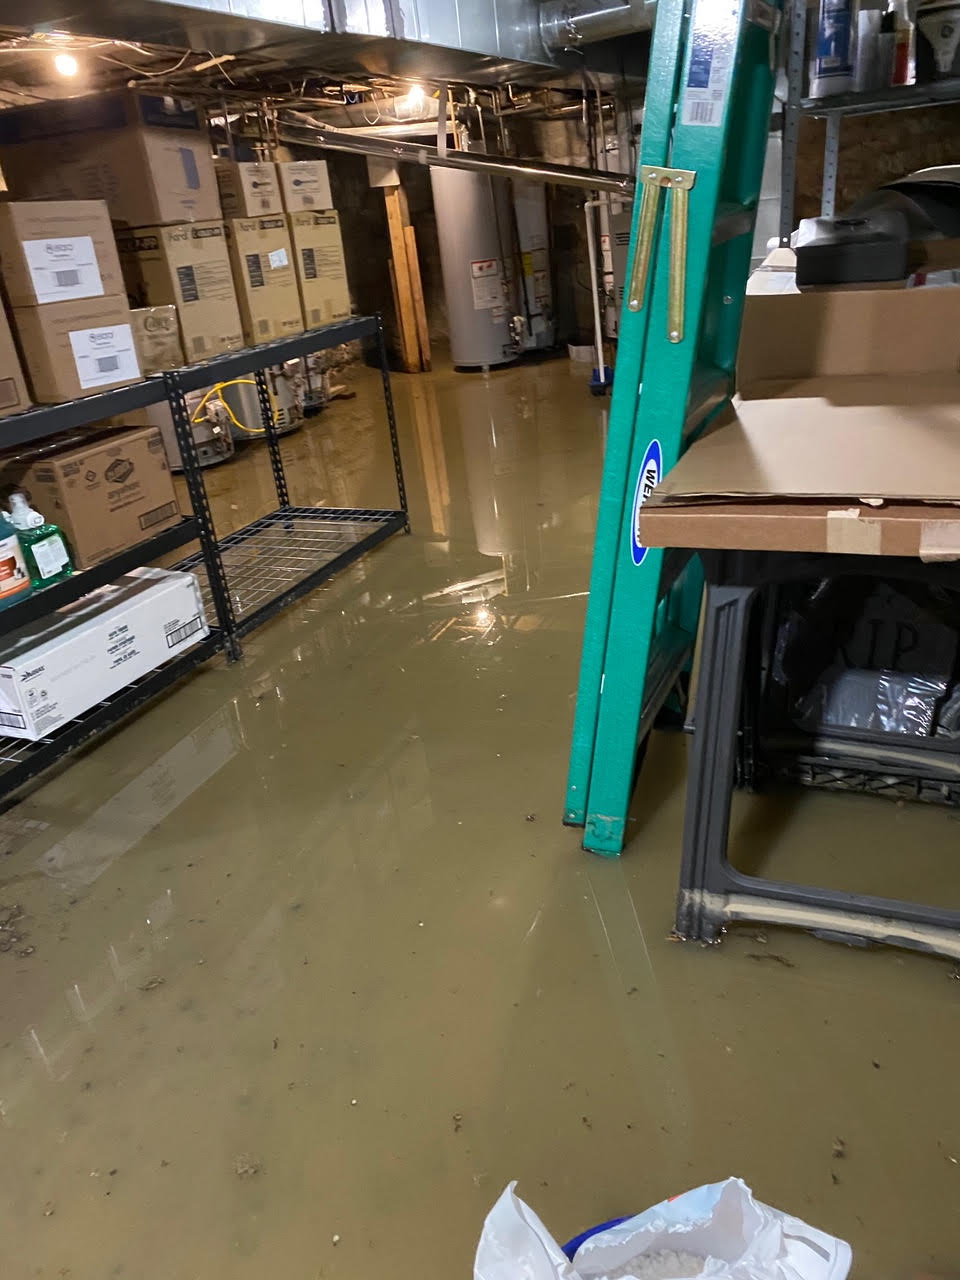 Some business owners in the Short North are still trying to get on their feet after closing due to COVID-19. Now, they are dealing with thousands of dollars worth of damage from basement flooding issues. (Photo courtesy: Ben Stoyka)<p></p>